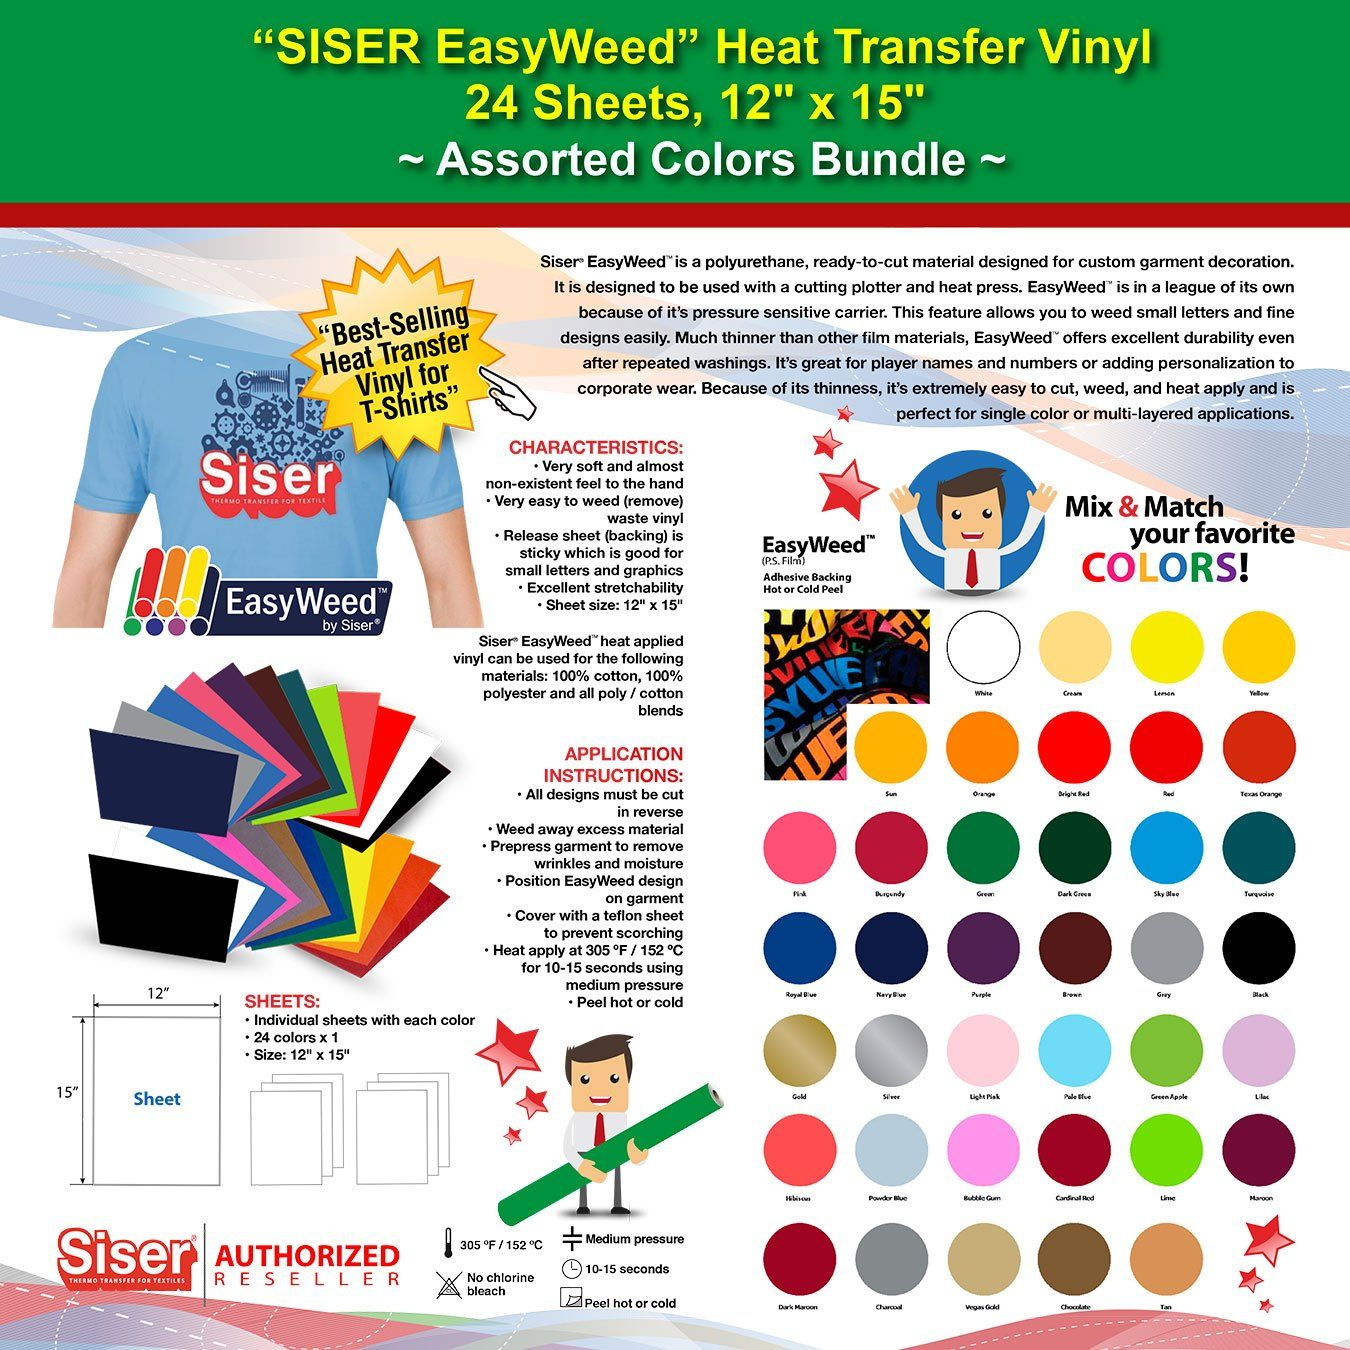 Gercutter Store 24 Sheets 12 X 15 Siser Iron On Easyweed Heat Transfer Vinyl Assorted Colors Starter Bundle Heat Transfer Vinyl Siser Easyweed Siser